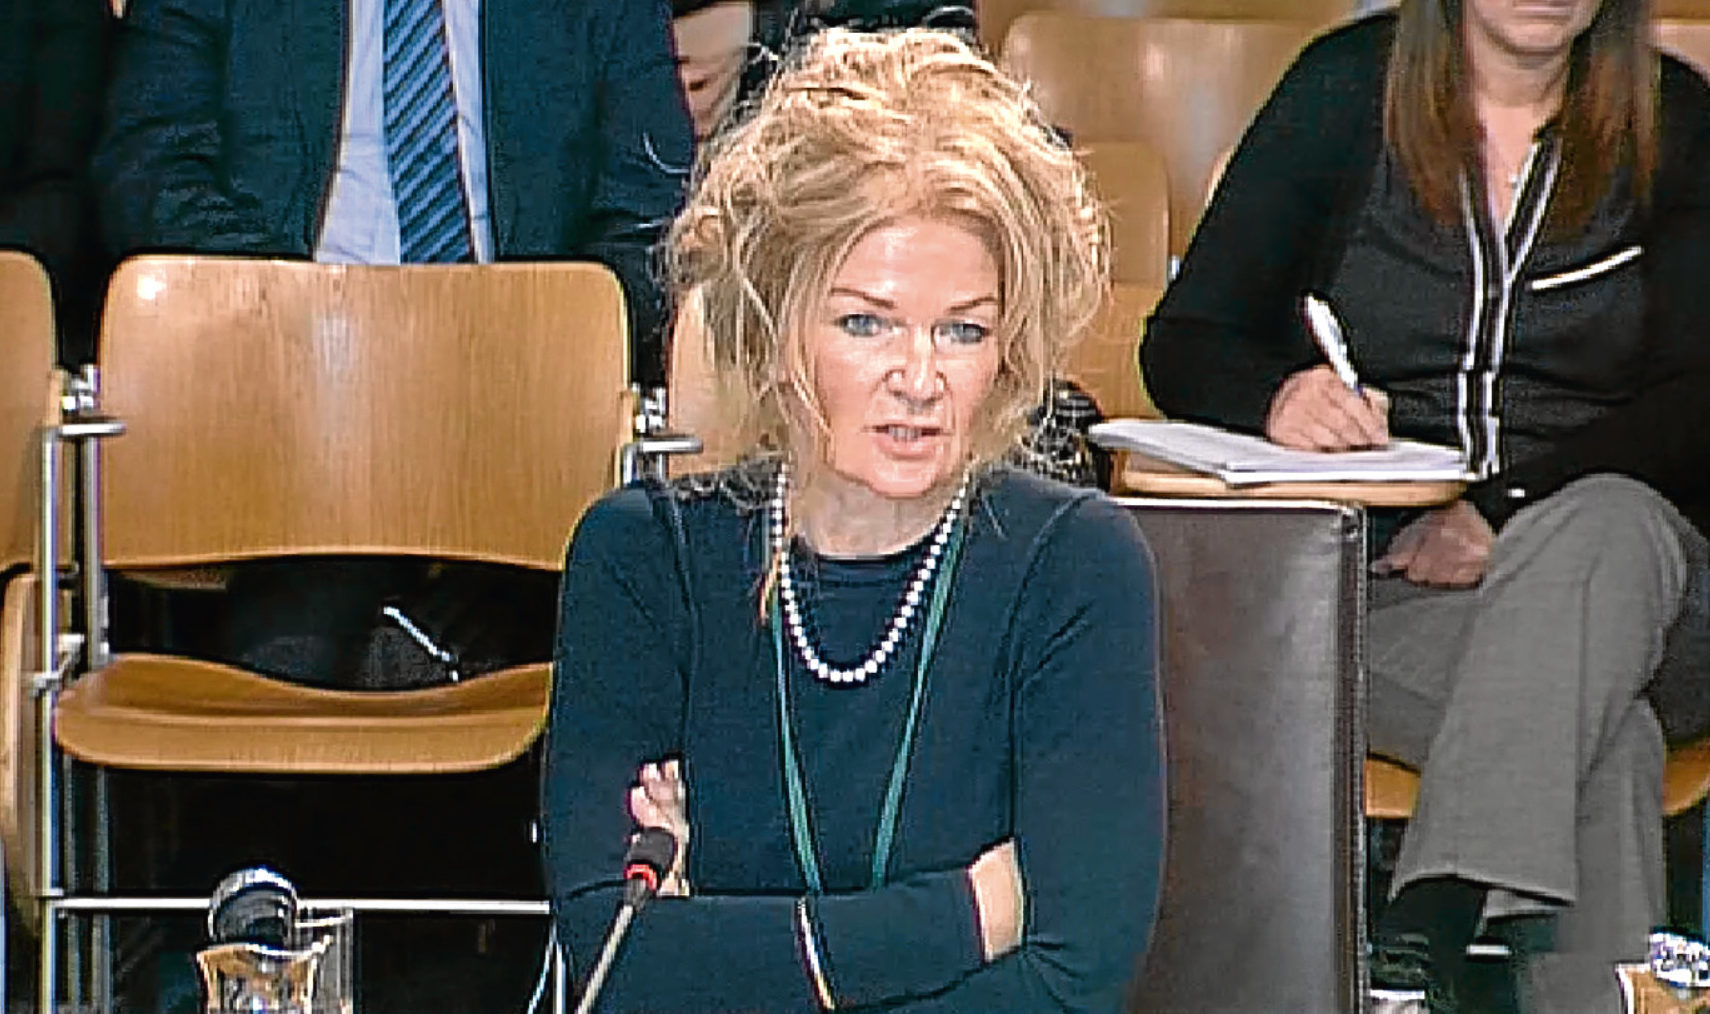 Lesley McLay at the Holyrood's public audit committee